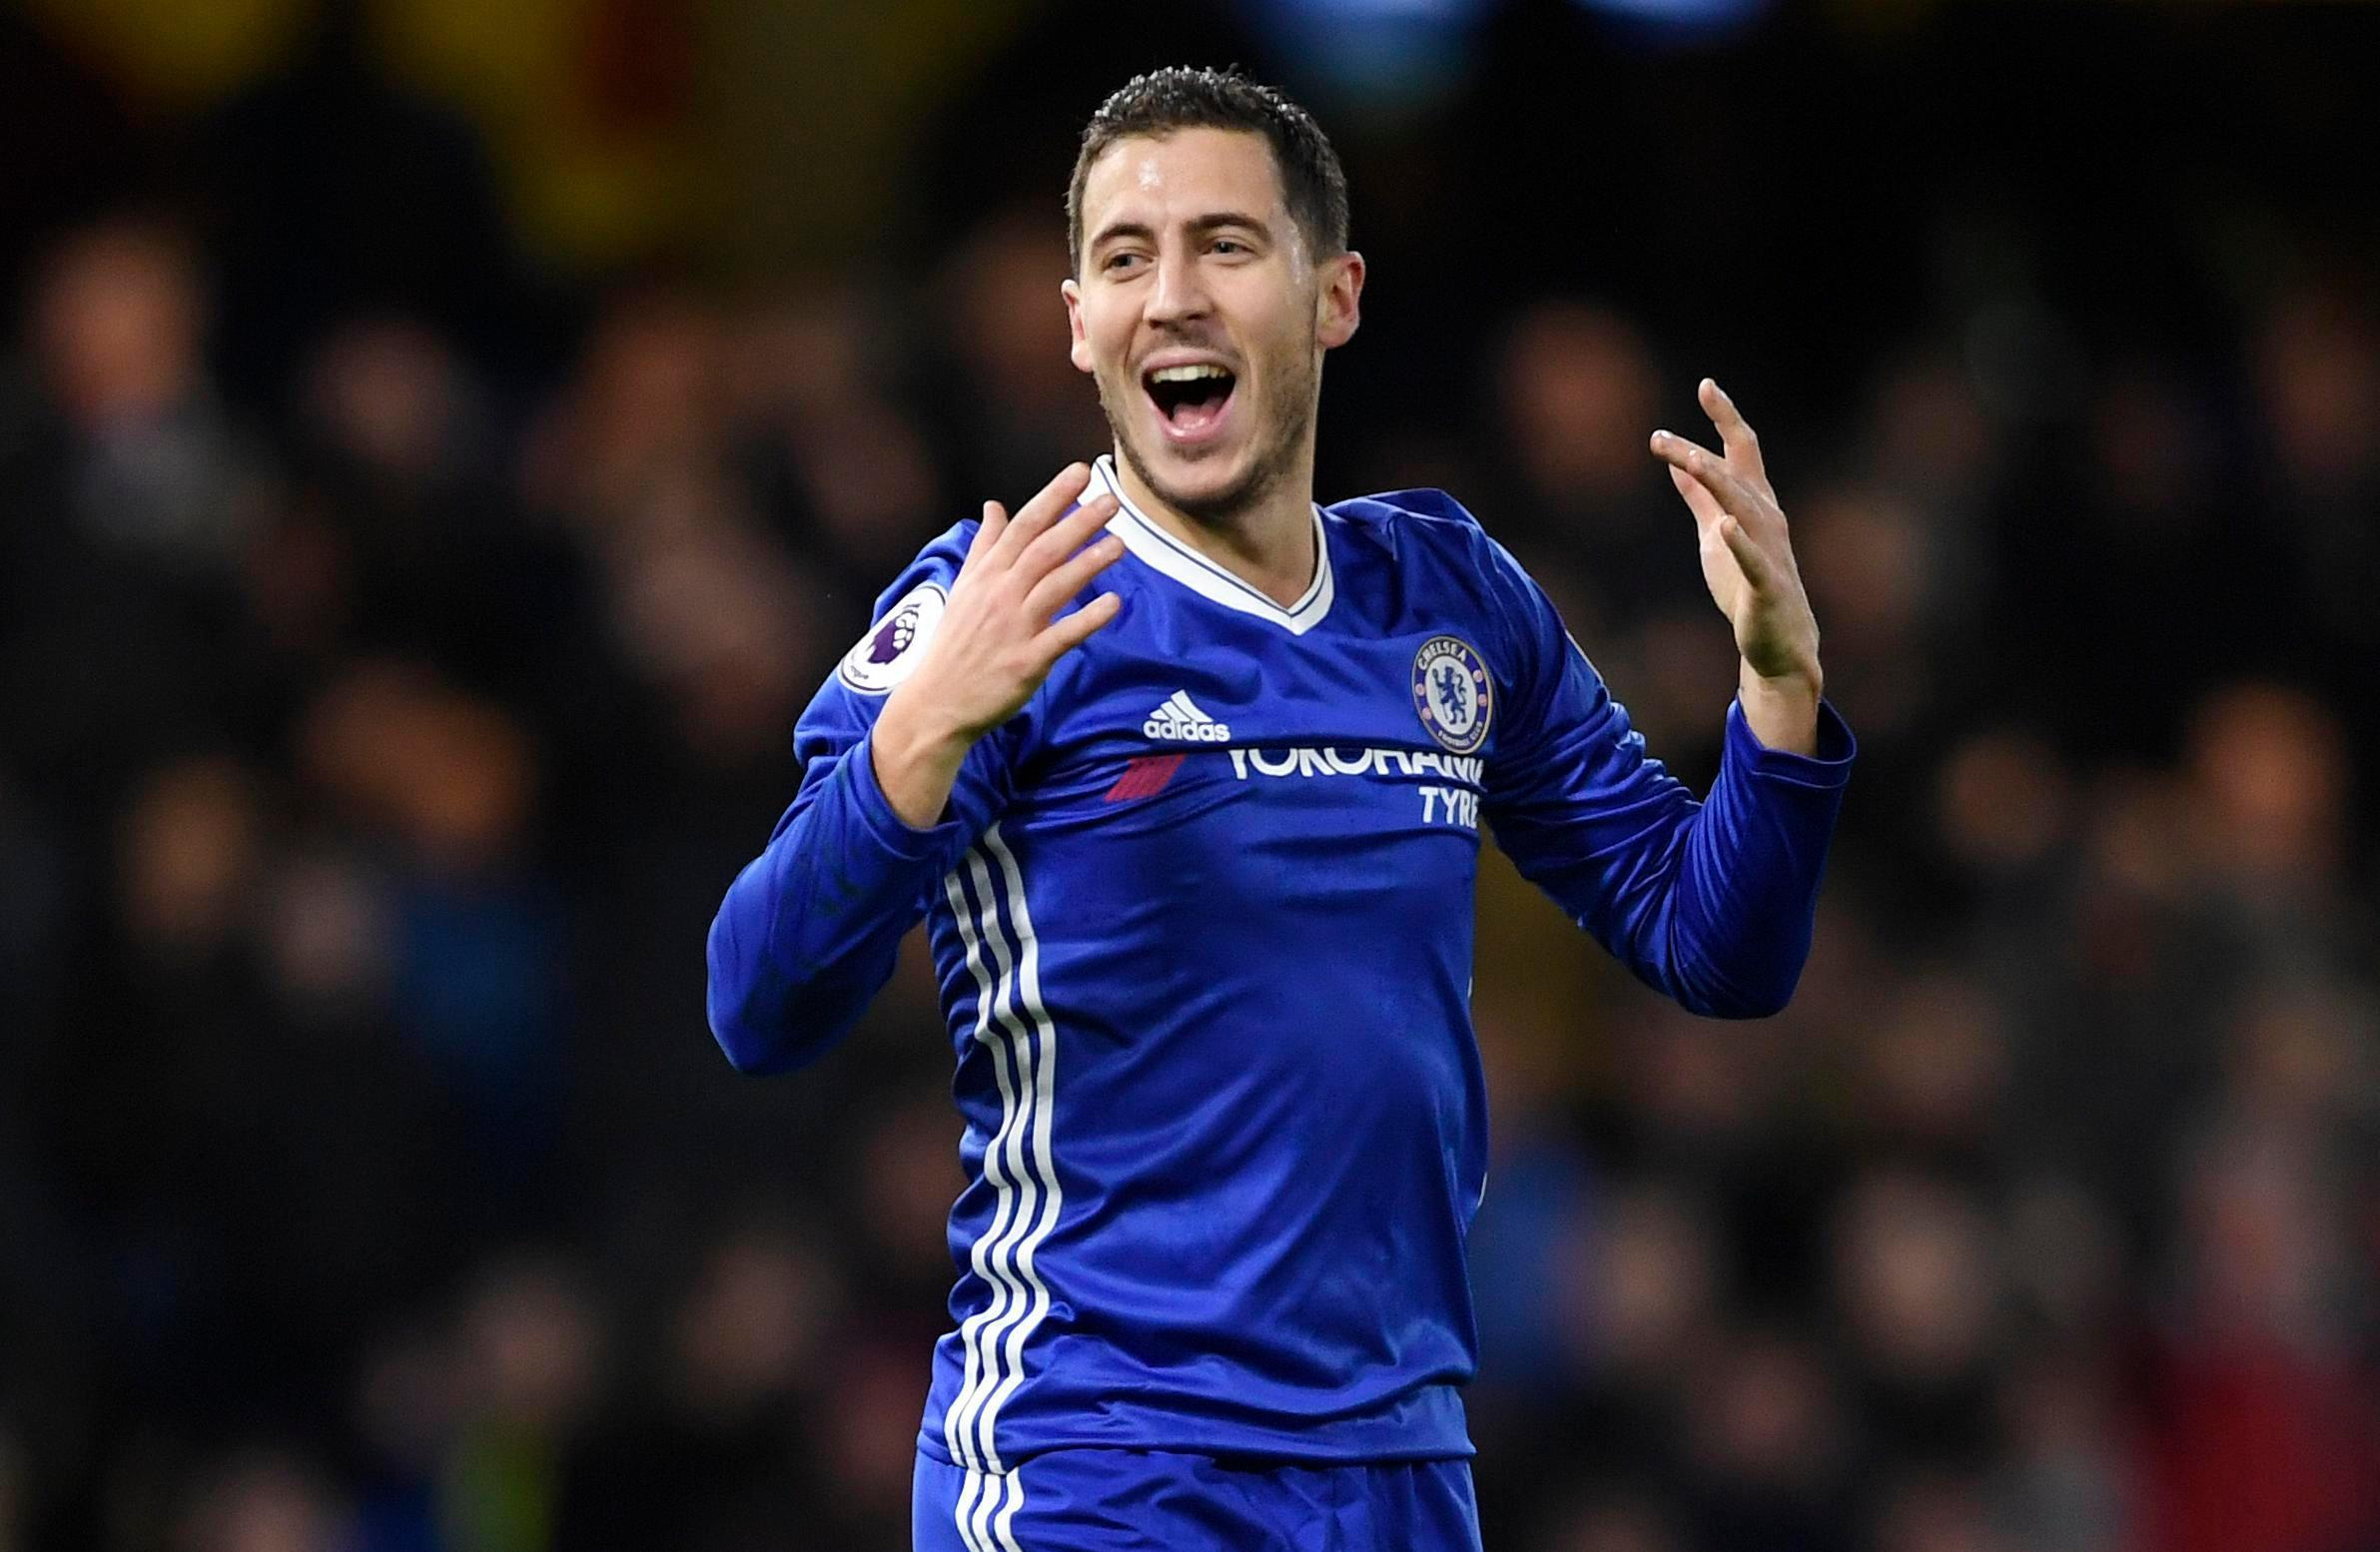 Eden Hazard has been back to his best this season